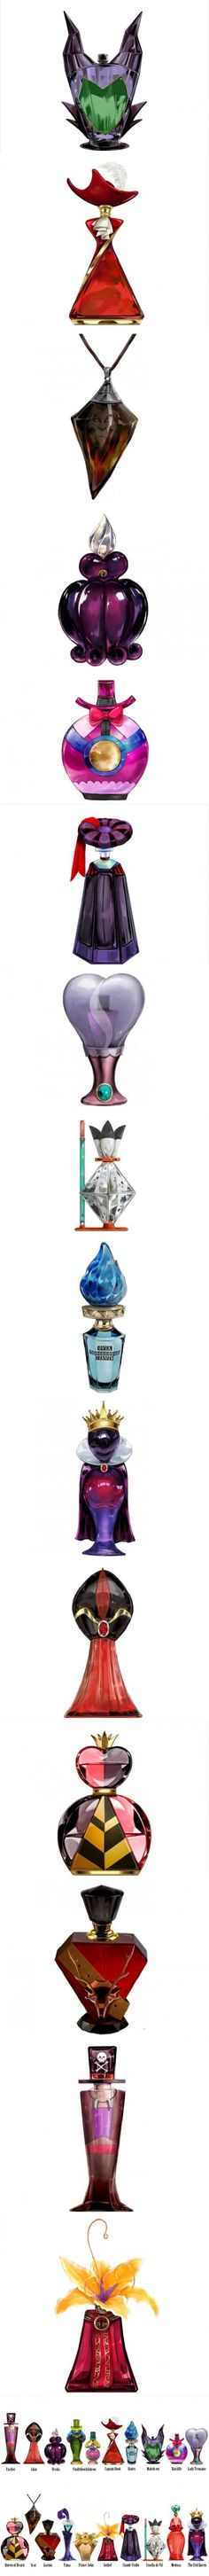 Japanese designer creates collection of gorgeous perfume bottles based on Disney villains. Maleficent it's my favorite